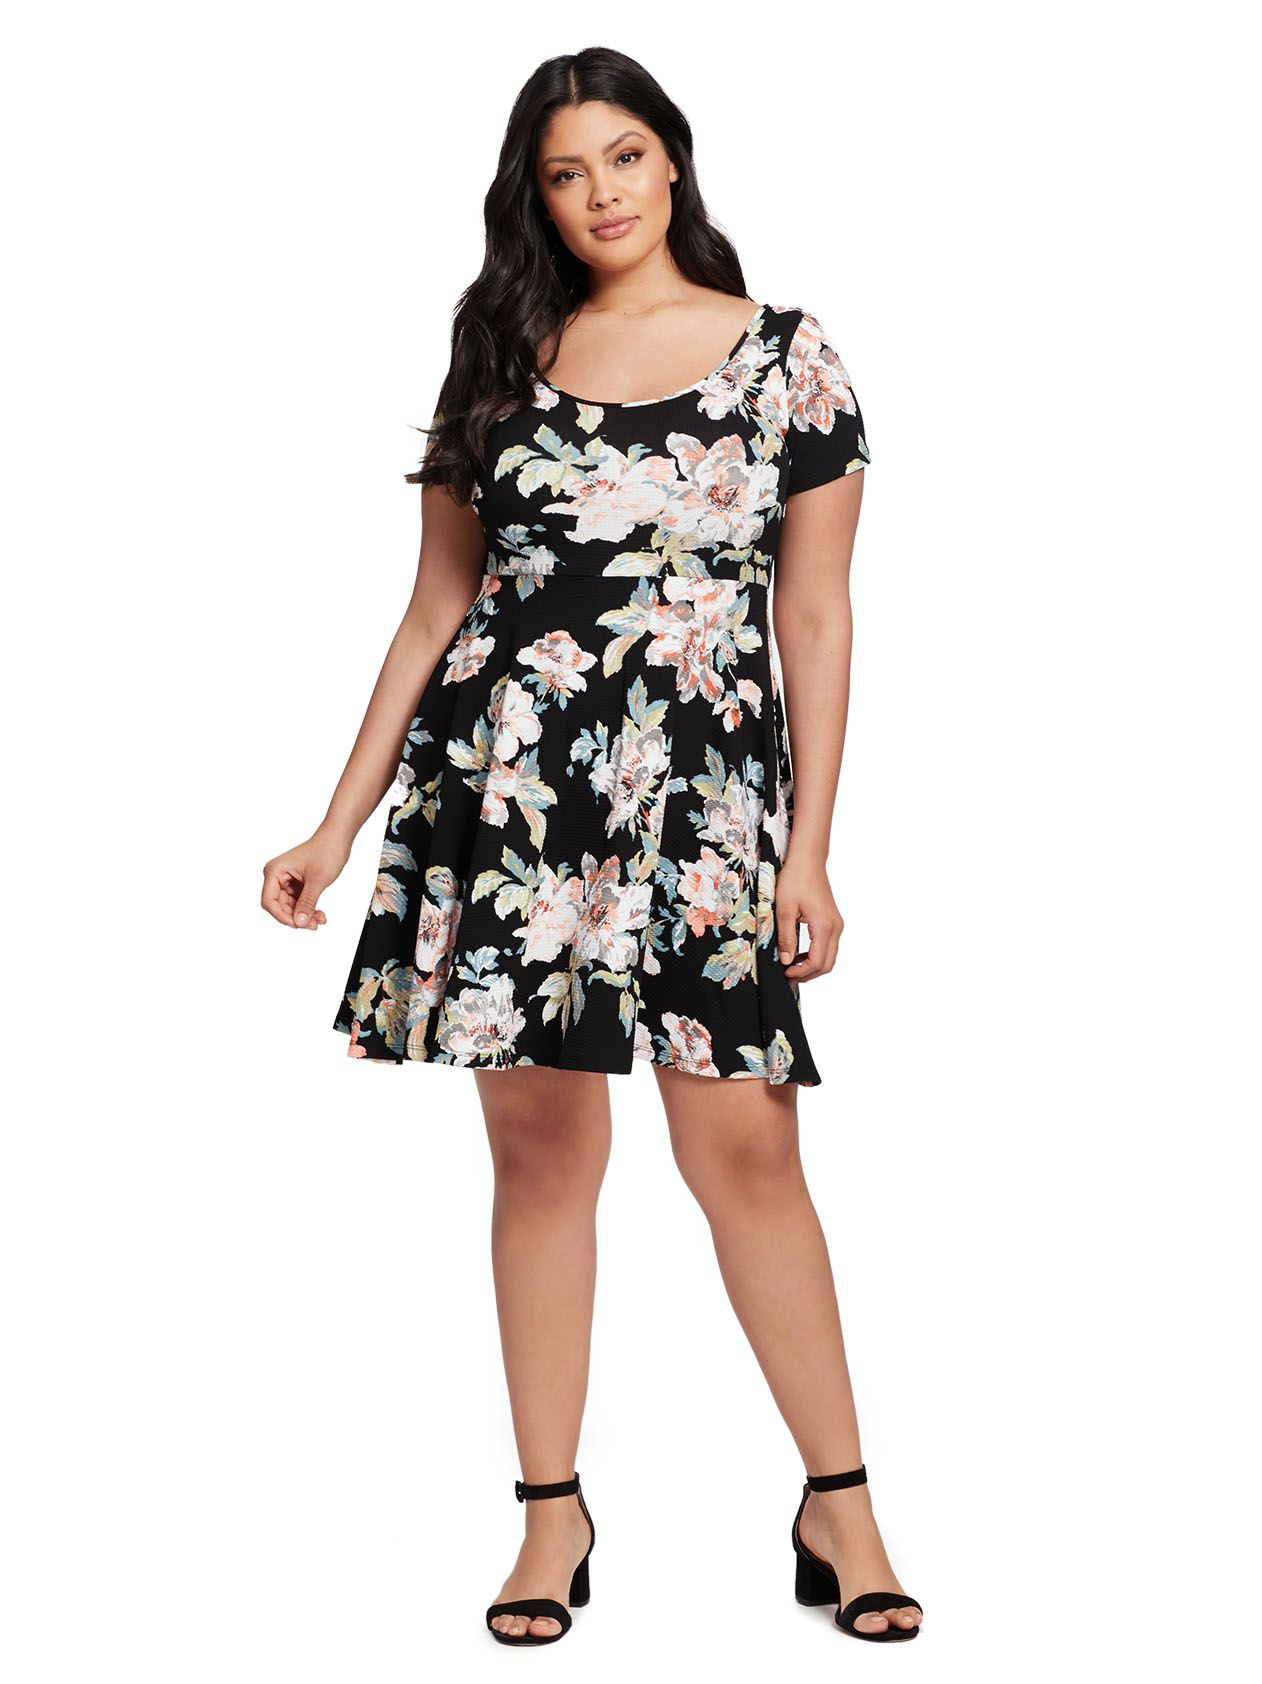 8c8a733a7c0 Floral Scoop Back Fit And Flare Dress by Soprano Available in sizes 1X-3X